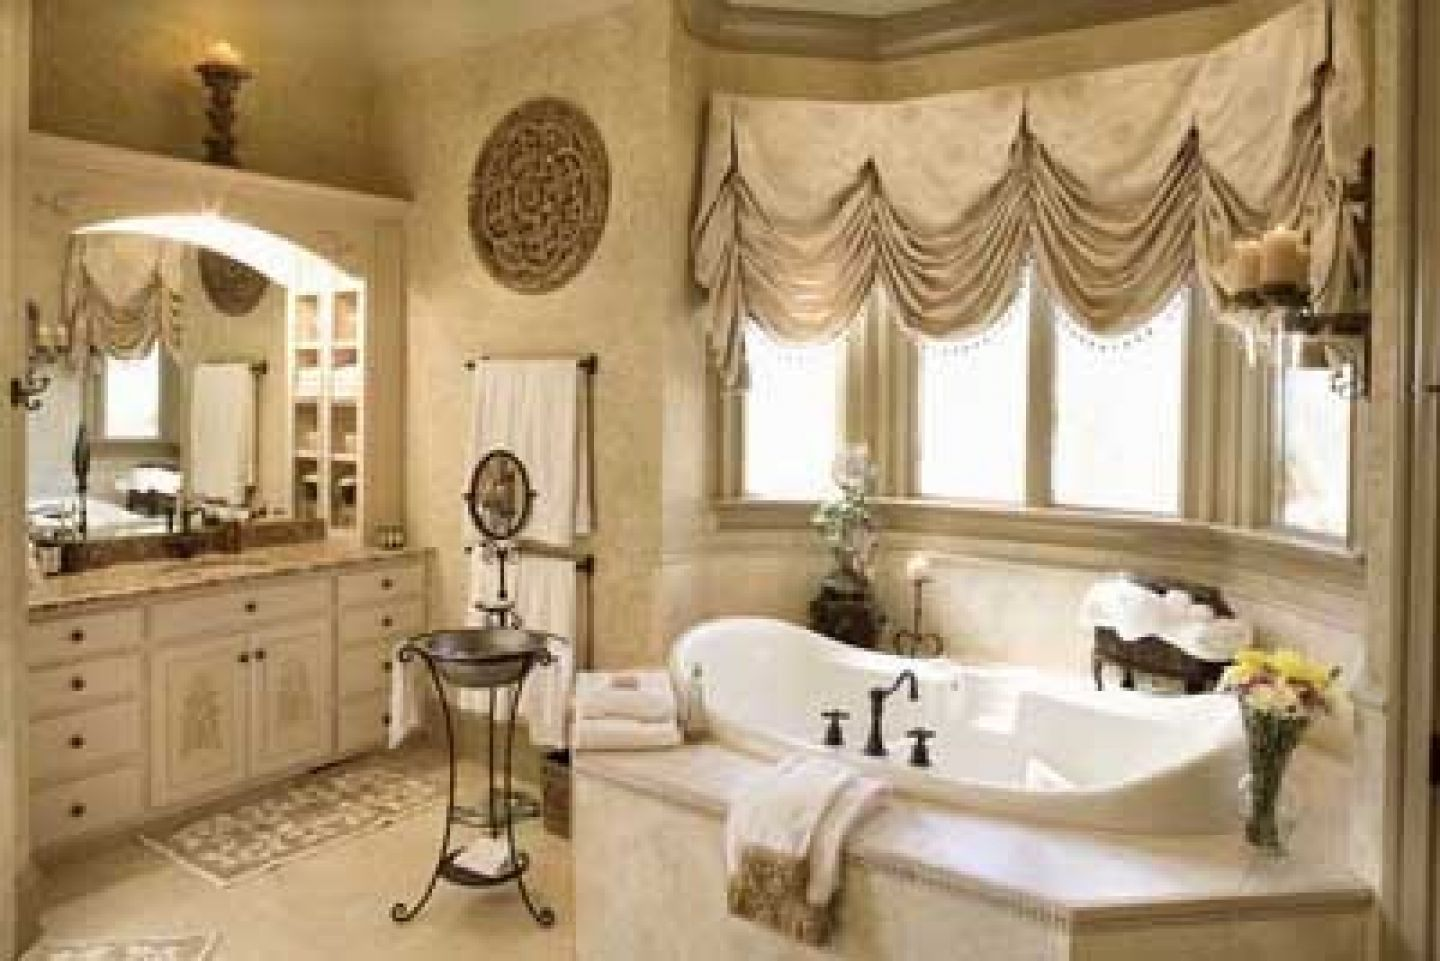 Beau Luxury Bathroom With Well Treated Windows Featuring Curtain Valance With  Elegant Color